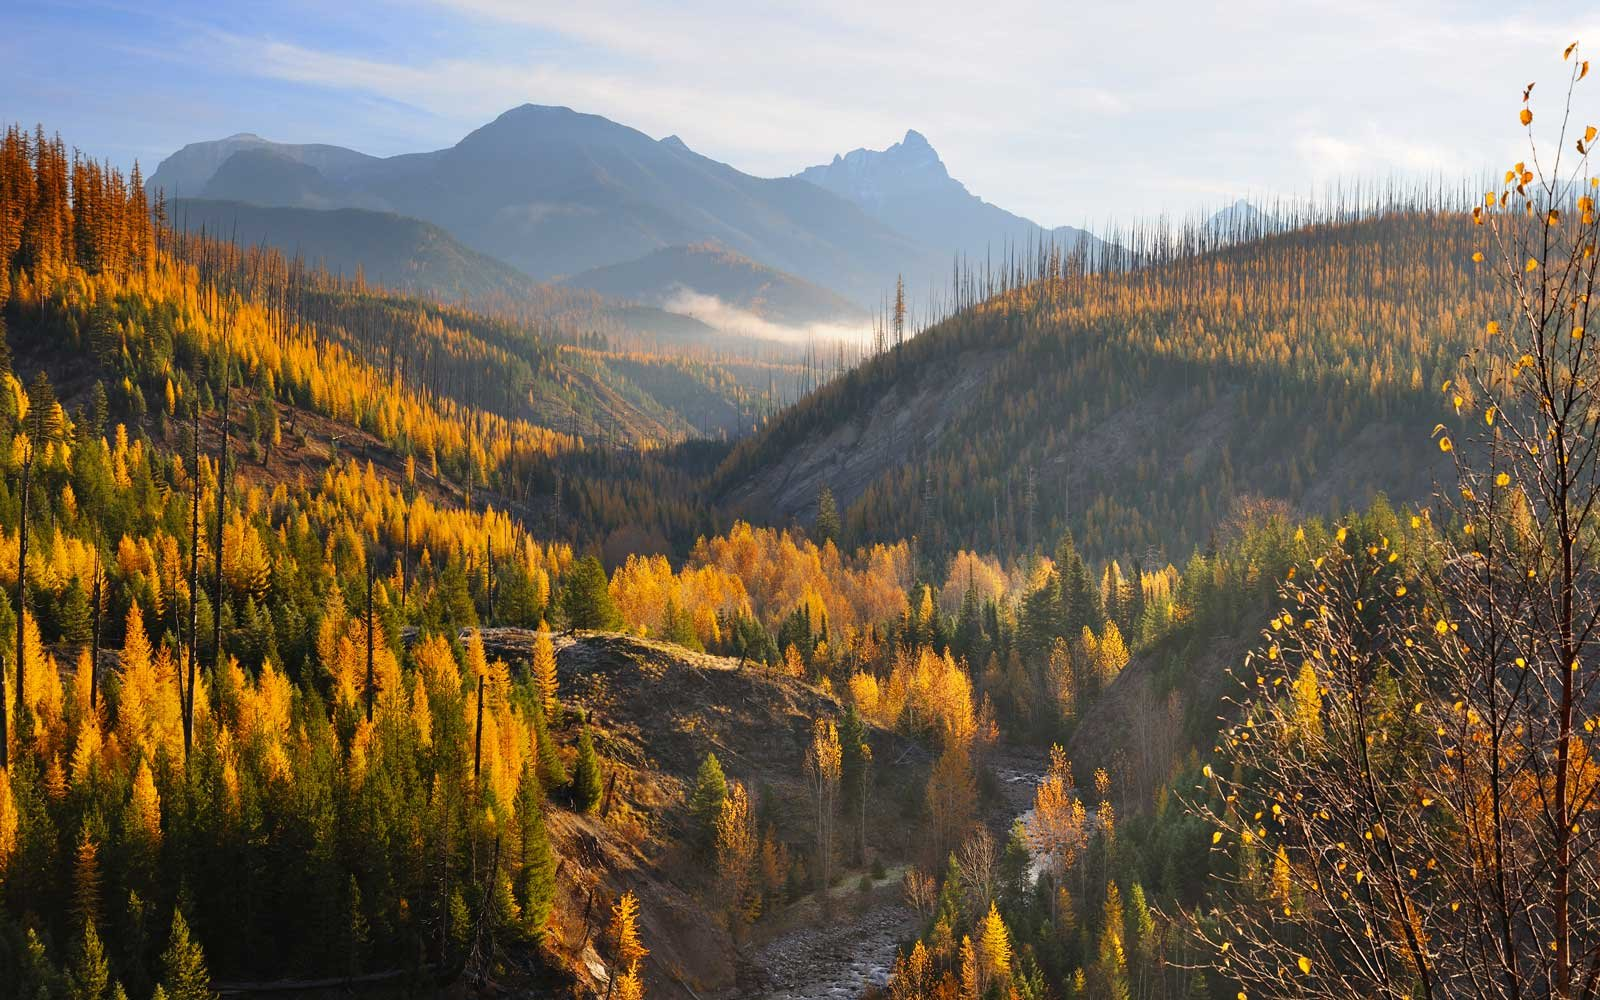 Scenic view of tamarack trees changing color in autumn in Glacier National Park